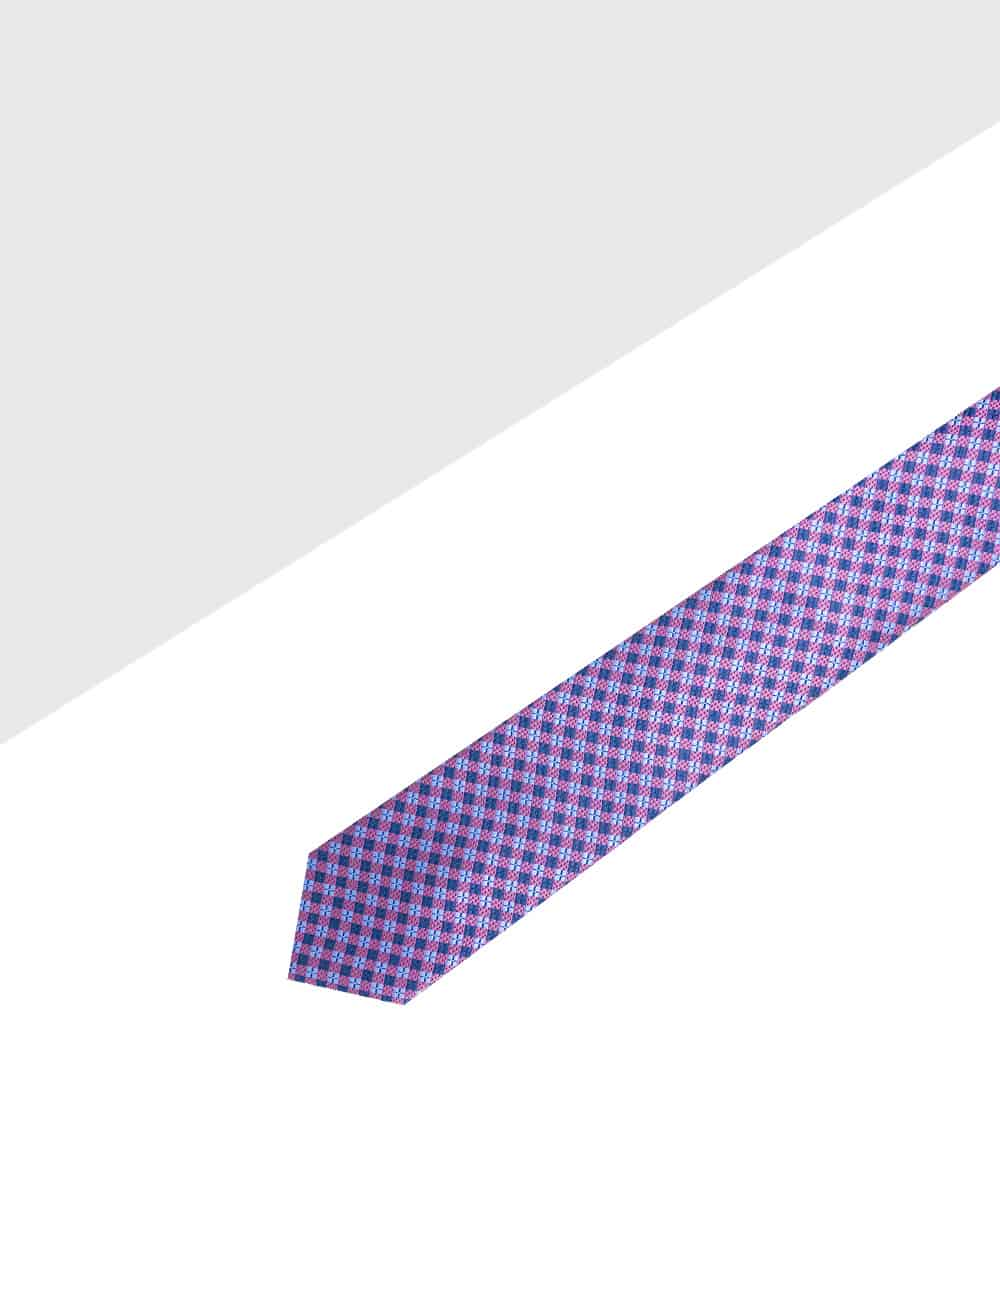 Navy and Pink Checks Spill Resist Woven Necktie NT32.9